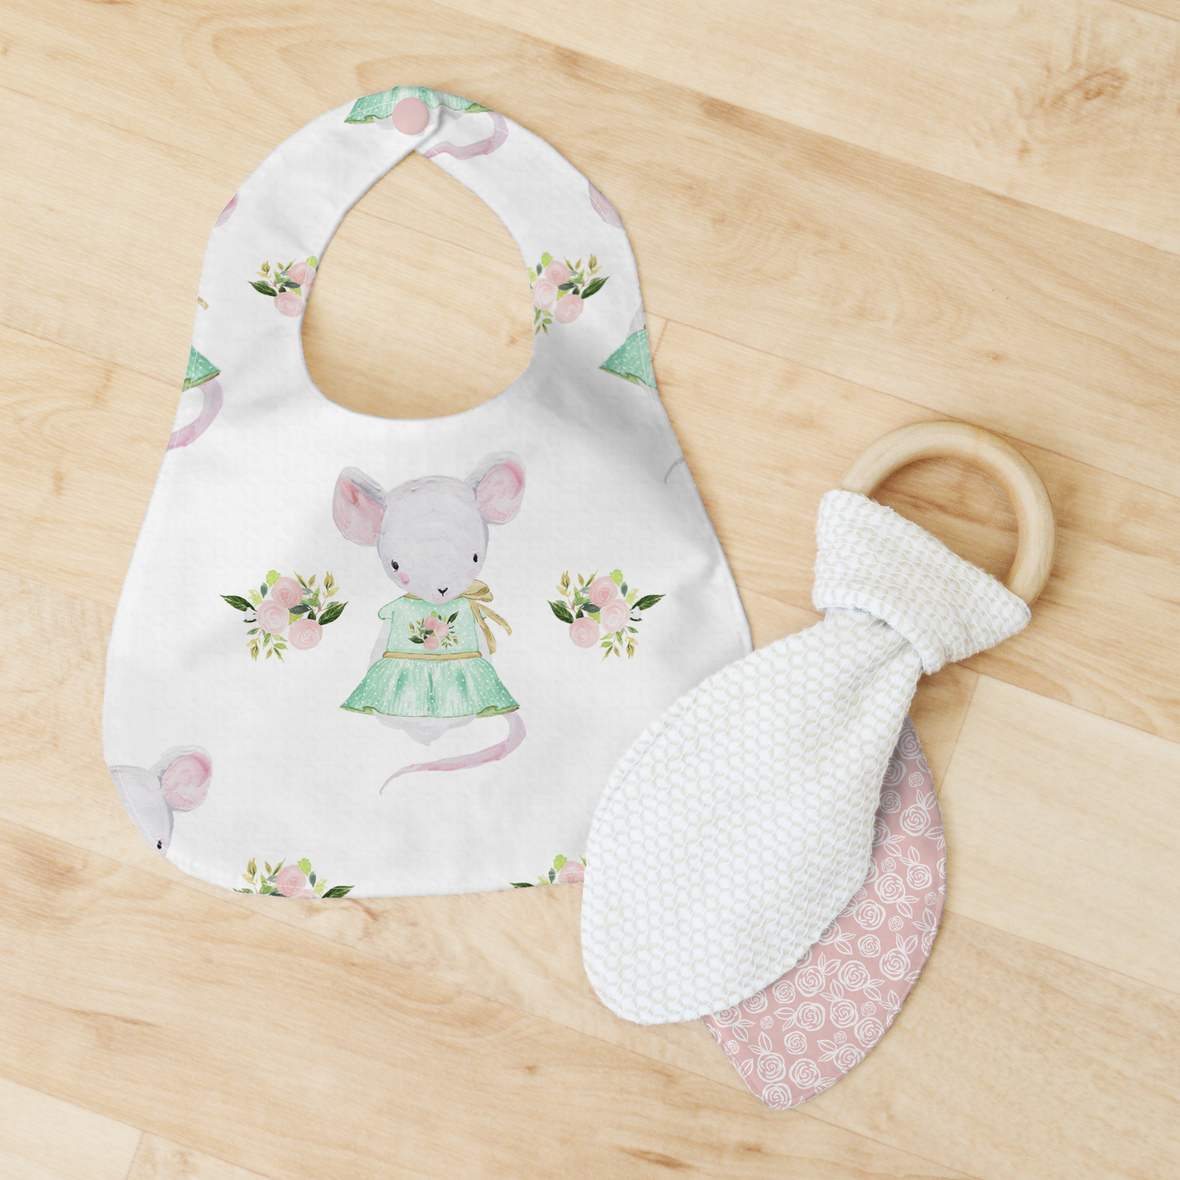 Bib and Teether large mouse small roses pink